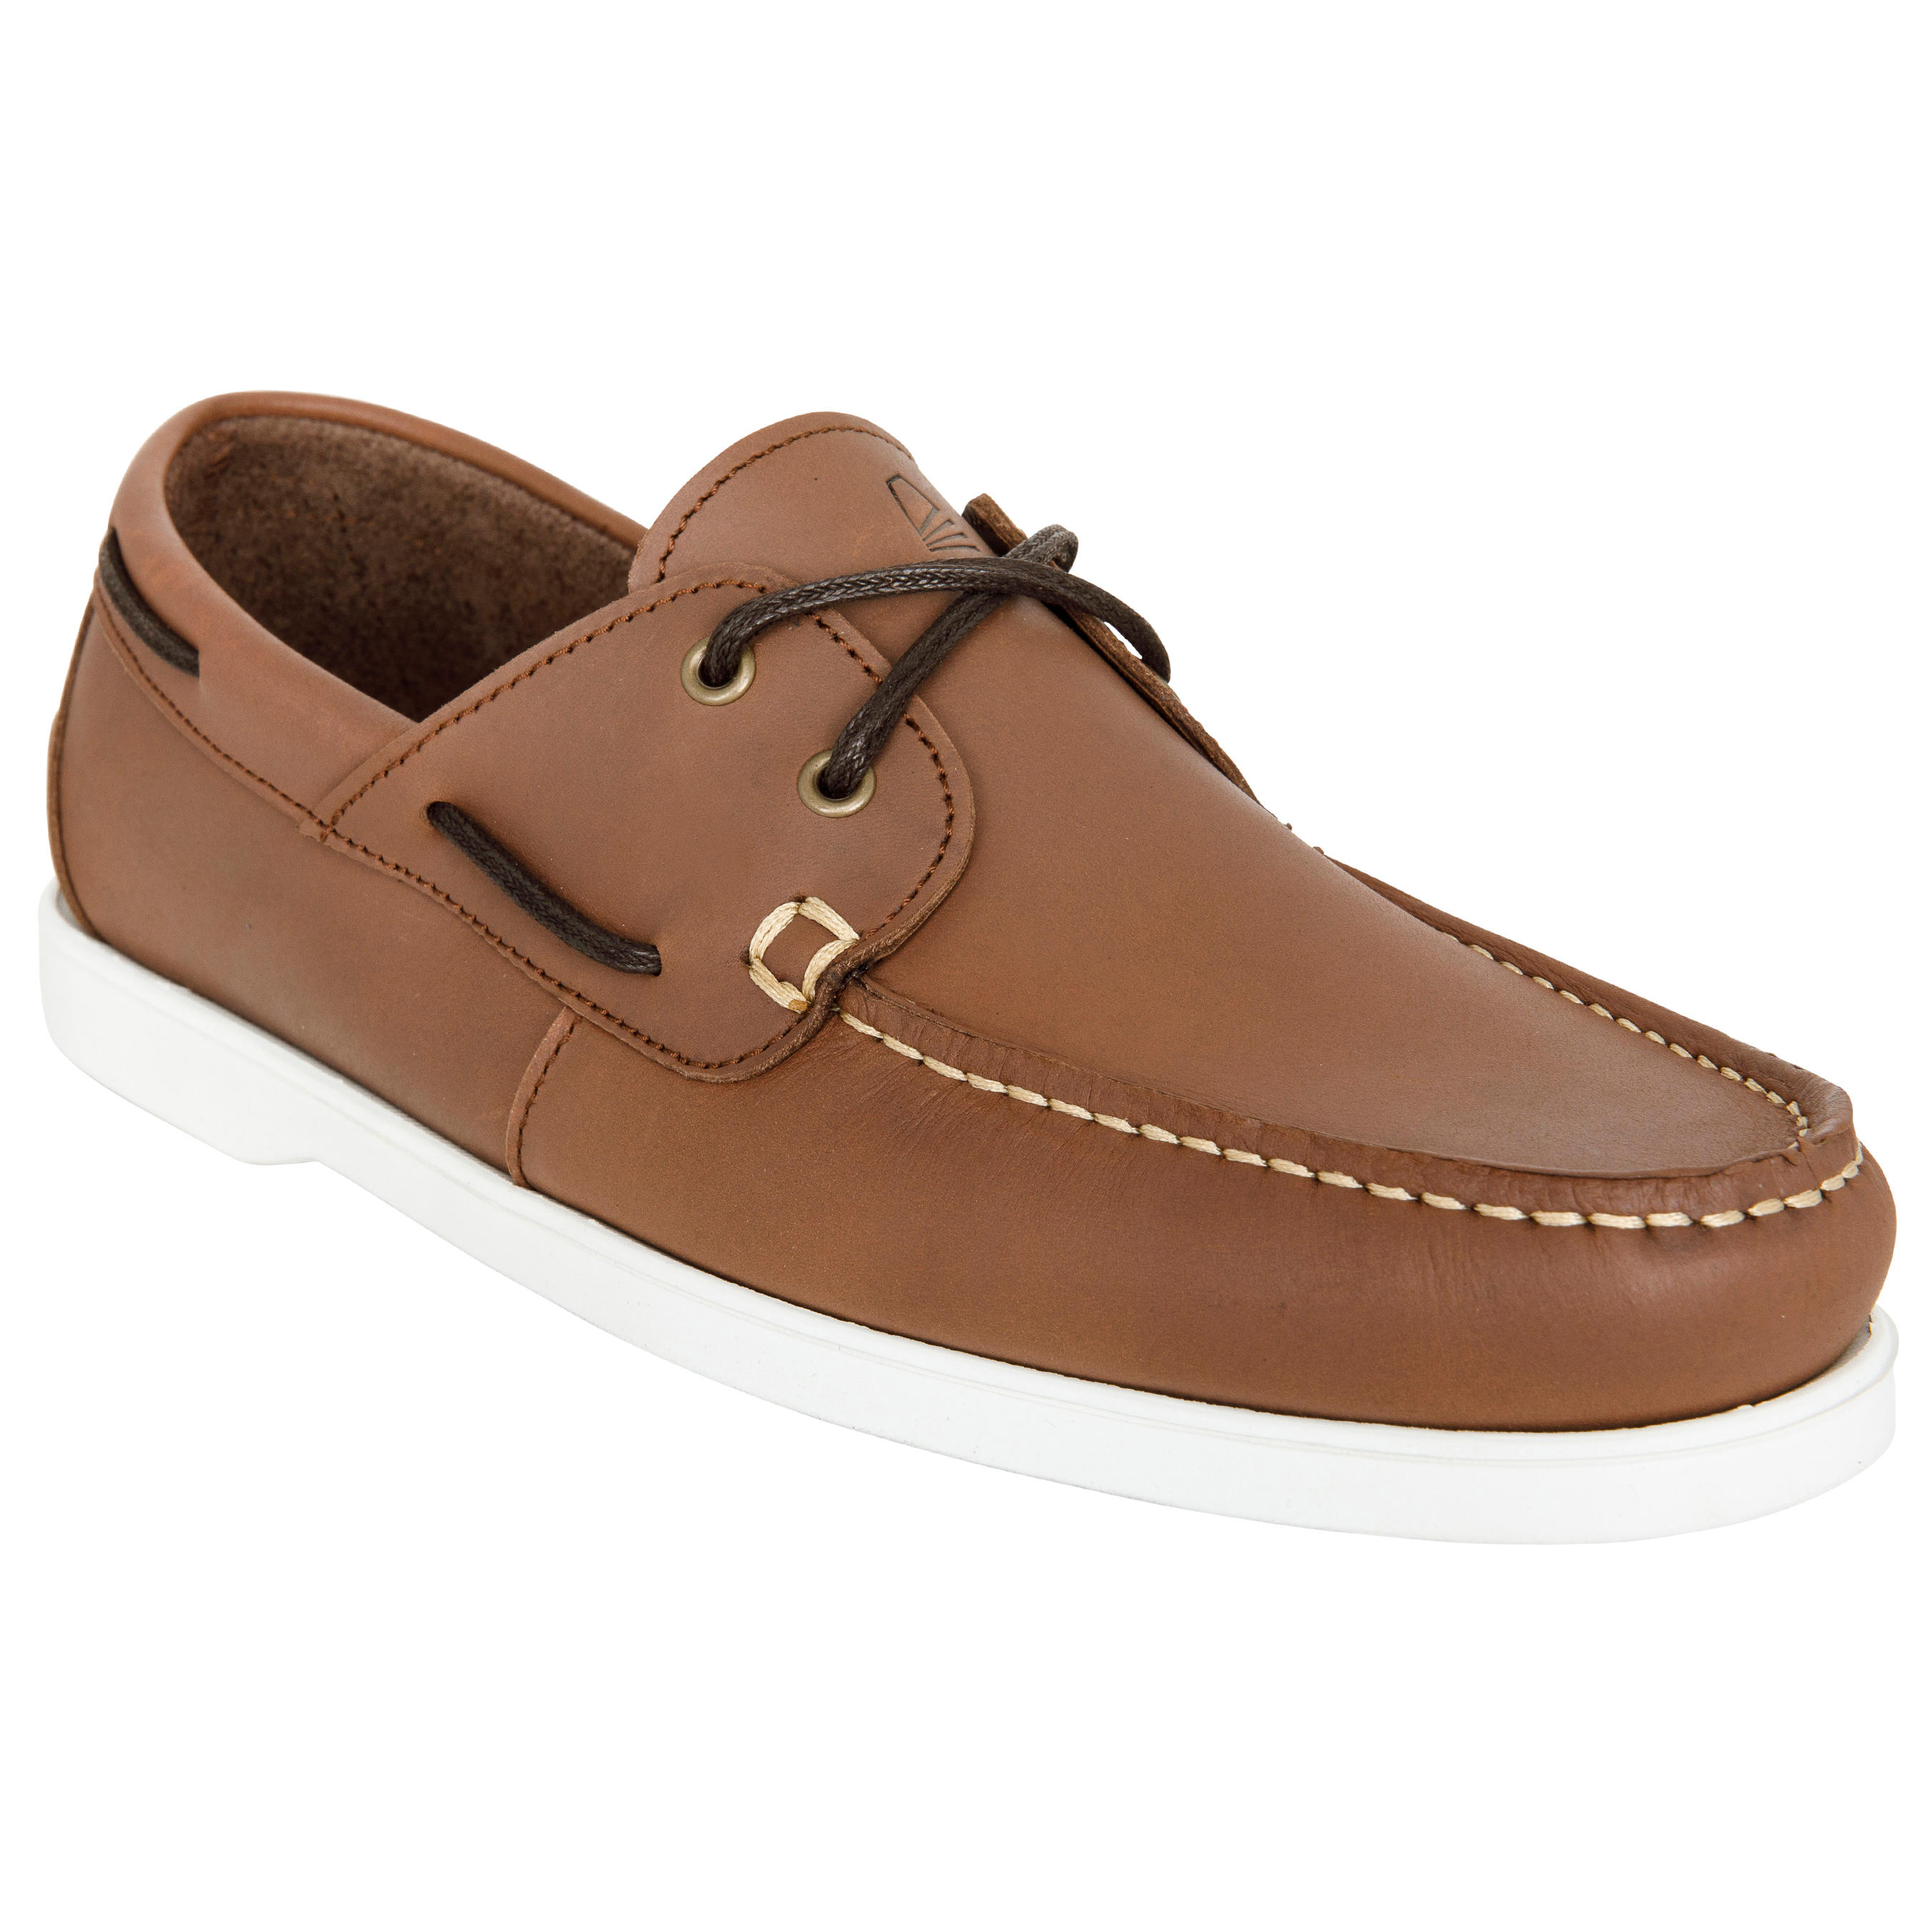 Cruise 500 Men's Leather Boat Shoes brown / white